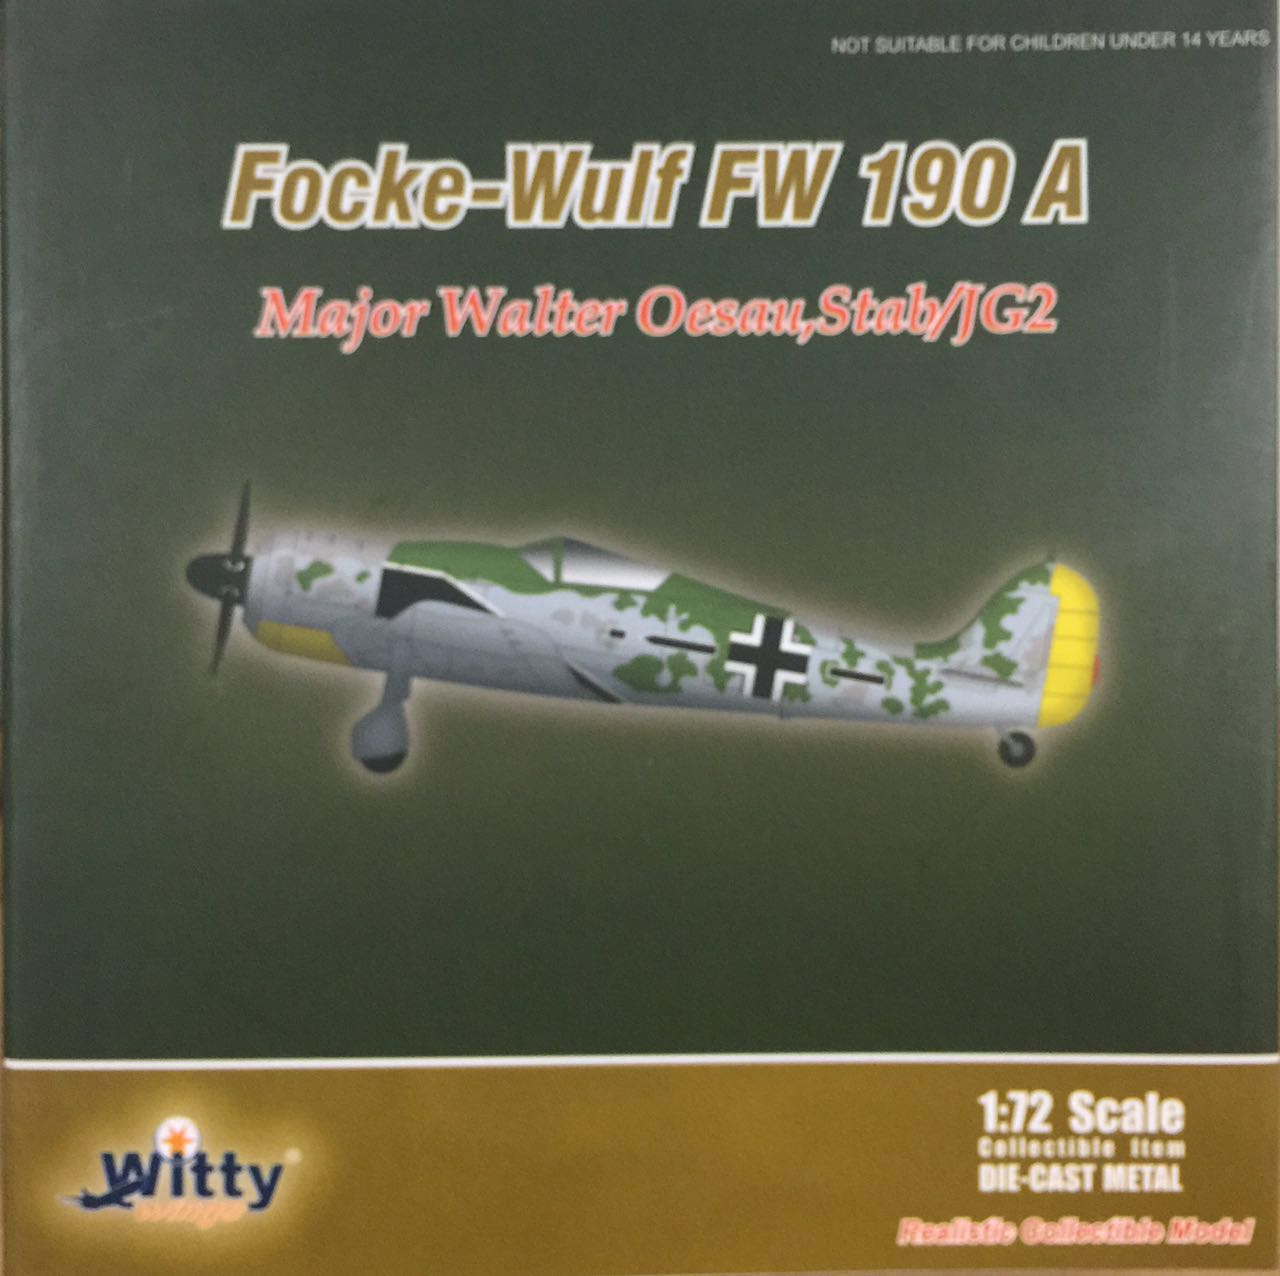 021-008 FW-190 Major Walter Oesau Stab/JG2, 1:72 Witty Finished Model